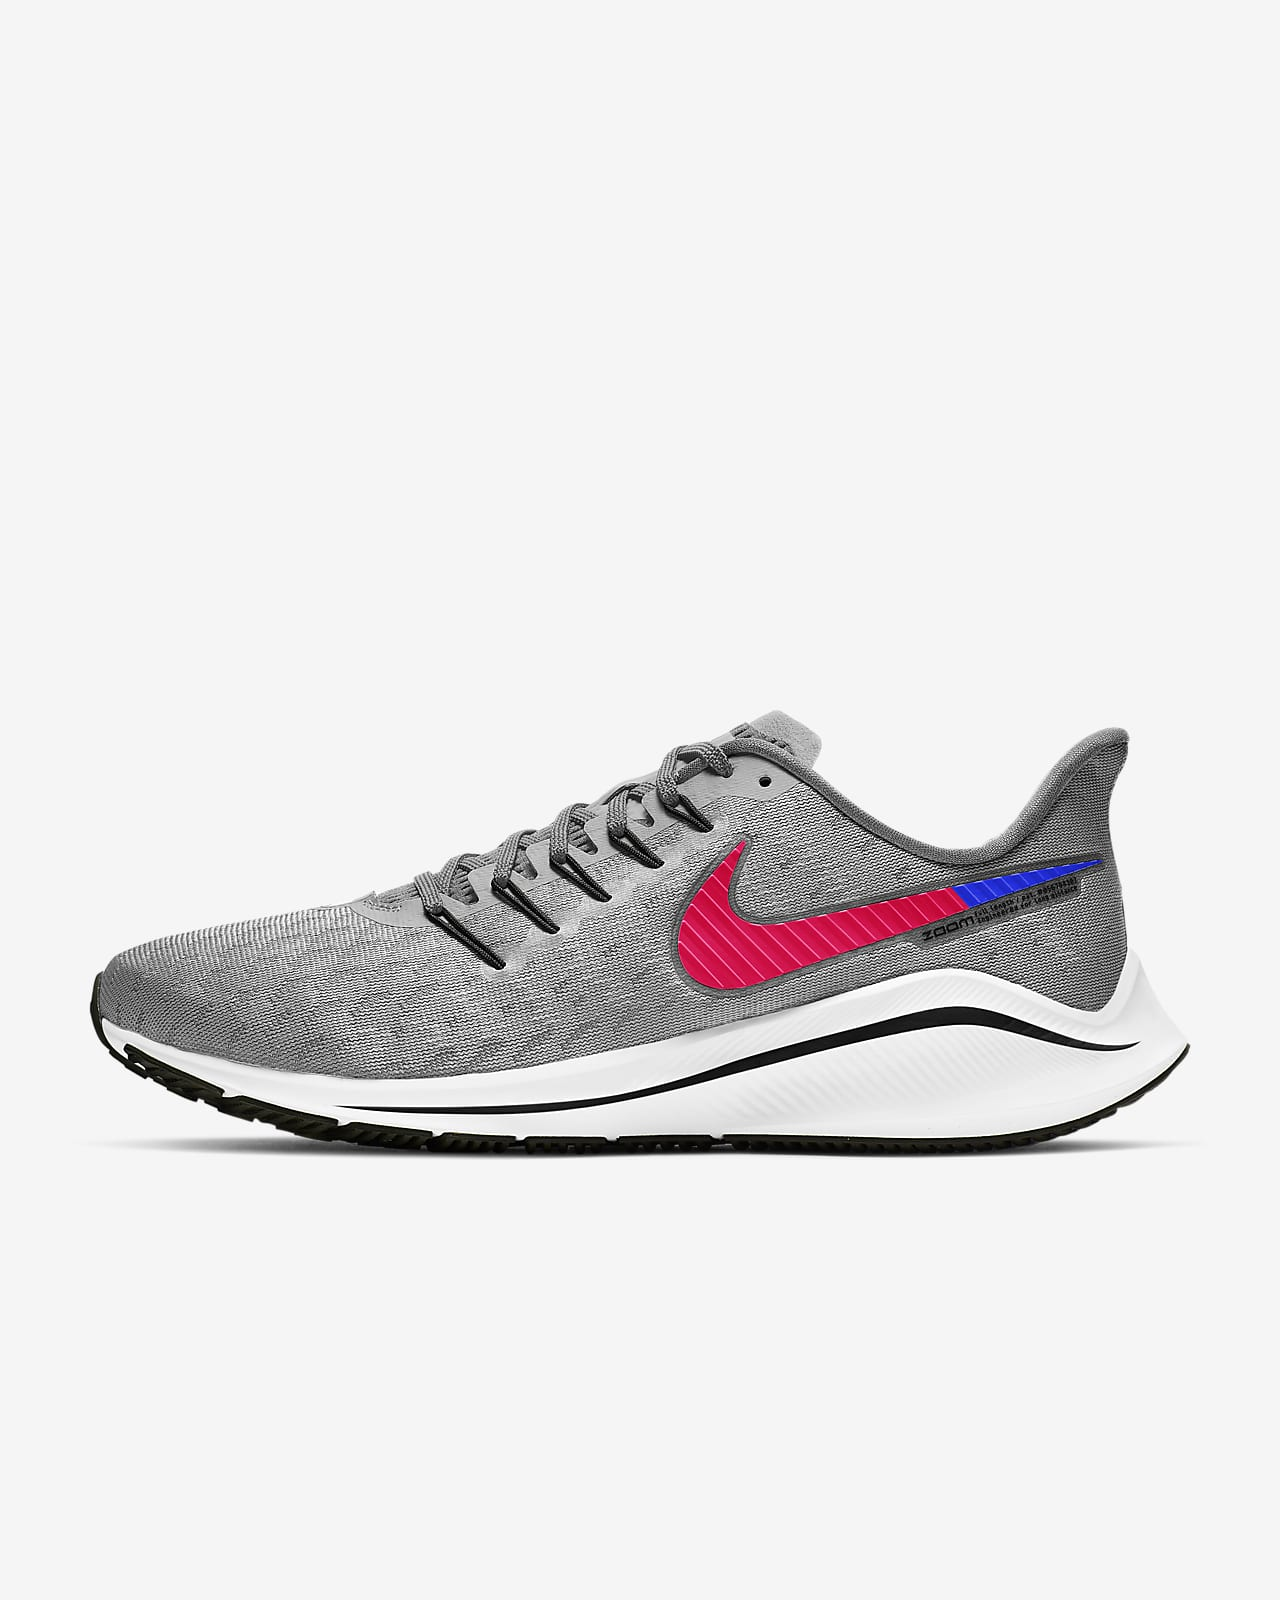 Chaussure de running Nike Air Zoom Vomero 14 pour Homme